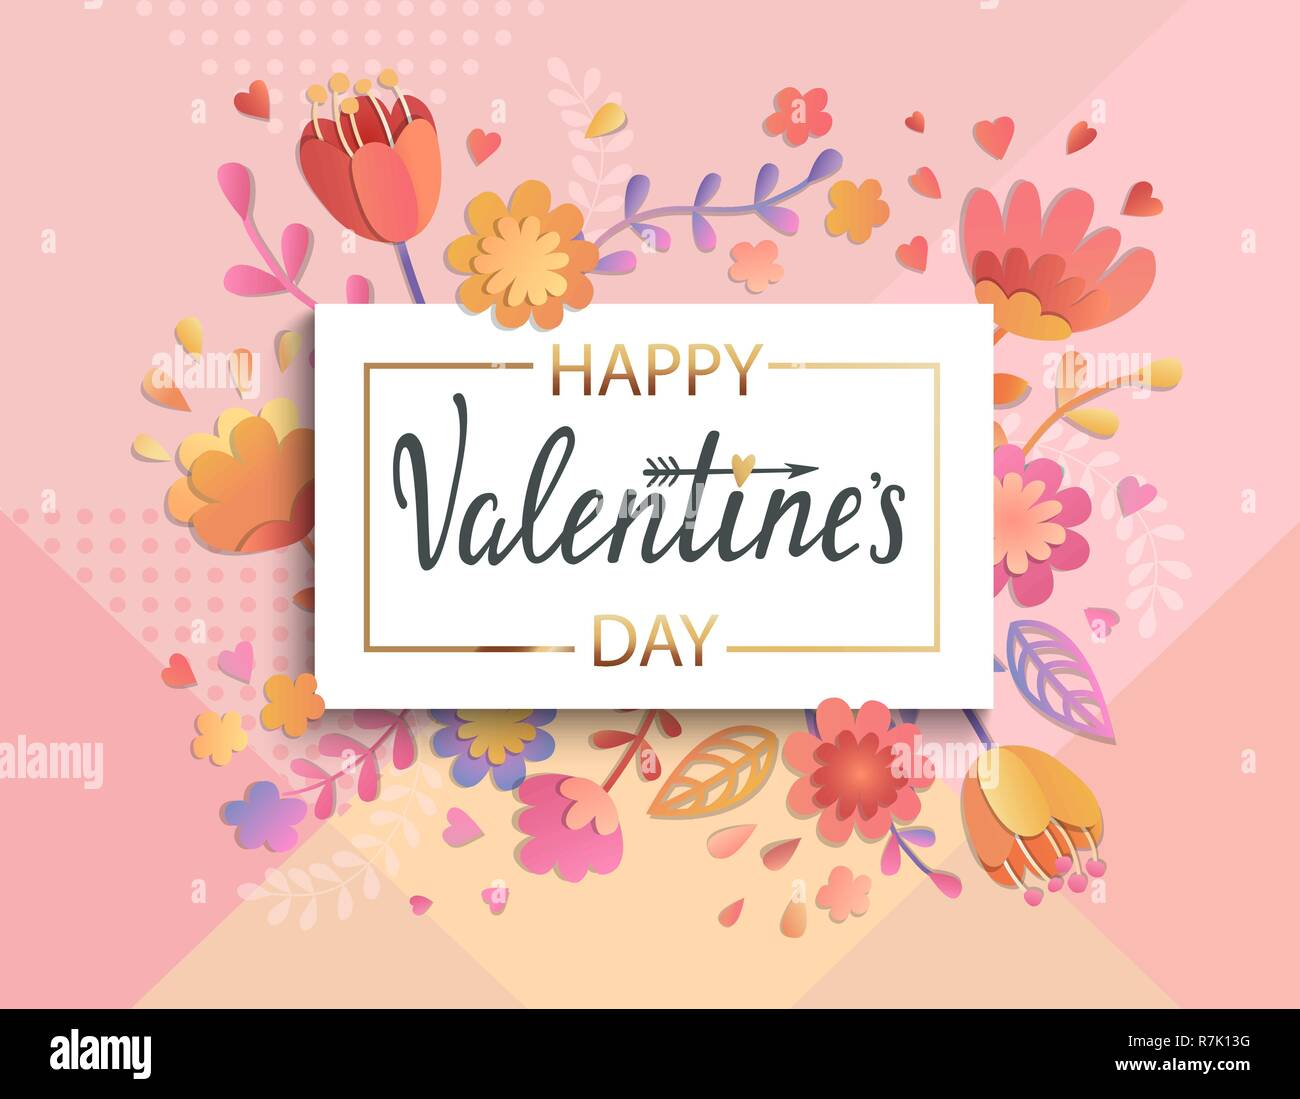 Happy Valentines Day Banner Template With Gold Square Frame On